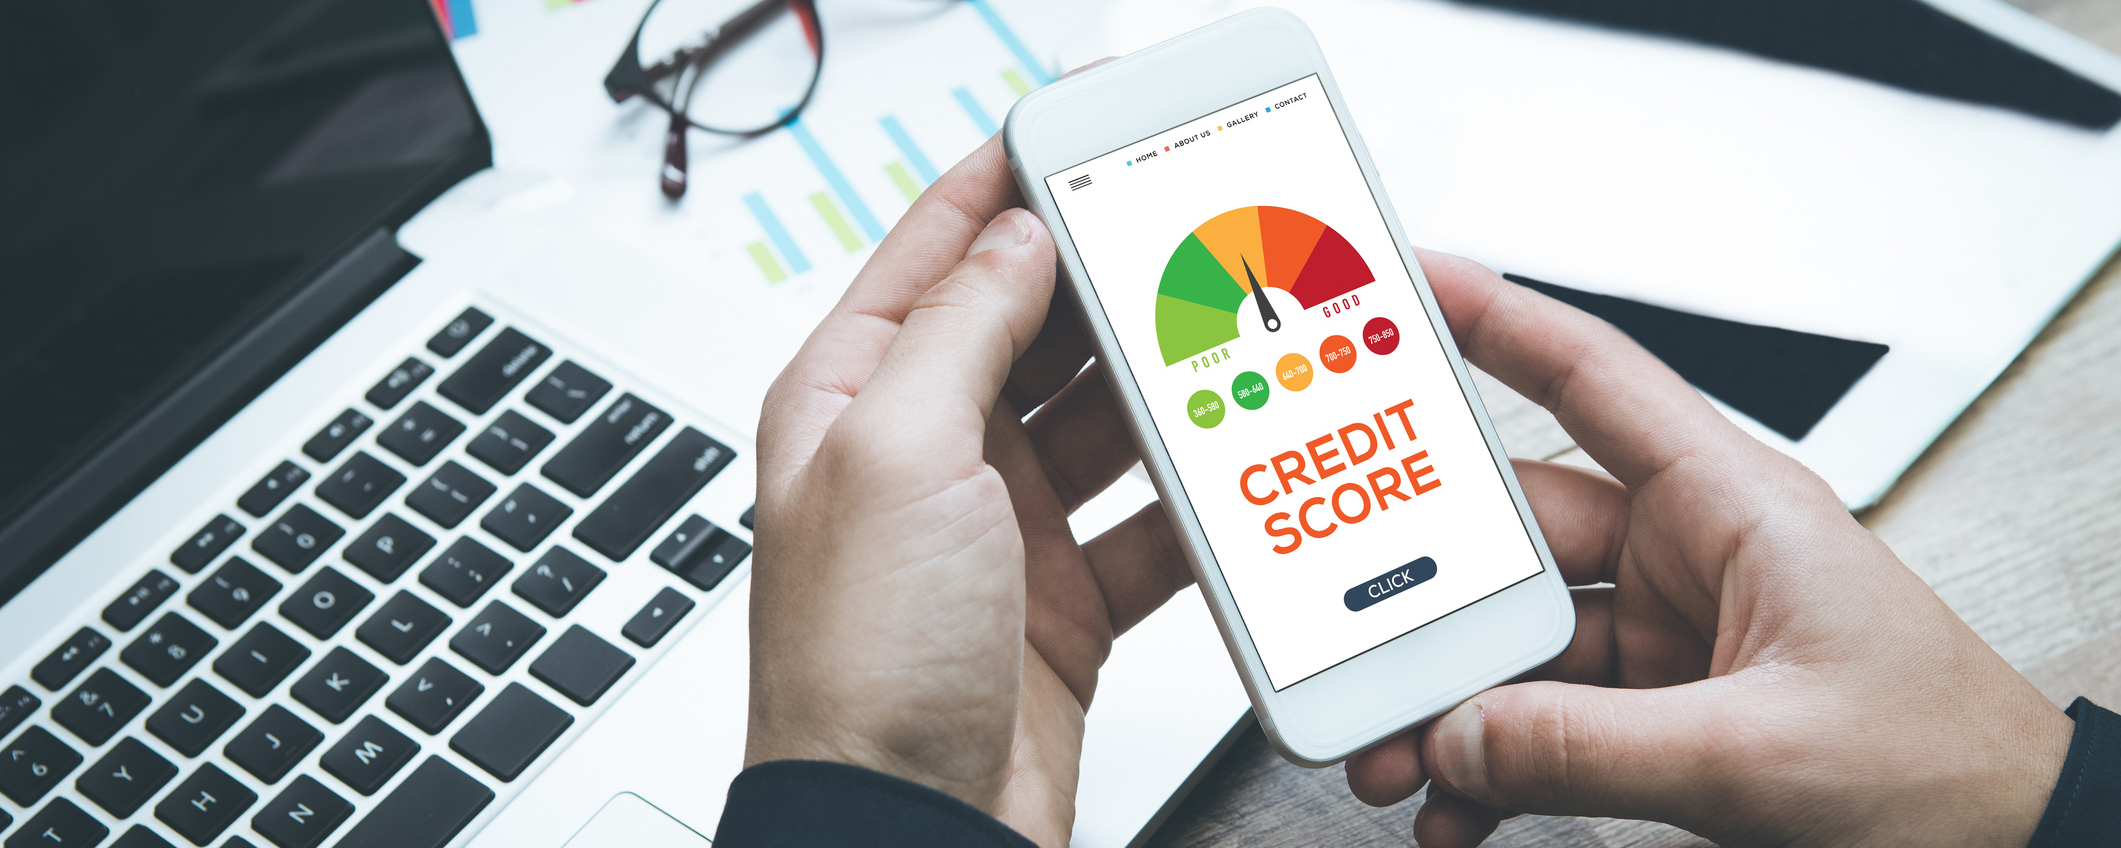 Credit Cards For Bad Credit | Learn More | RateCity